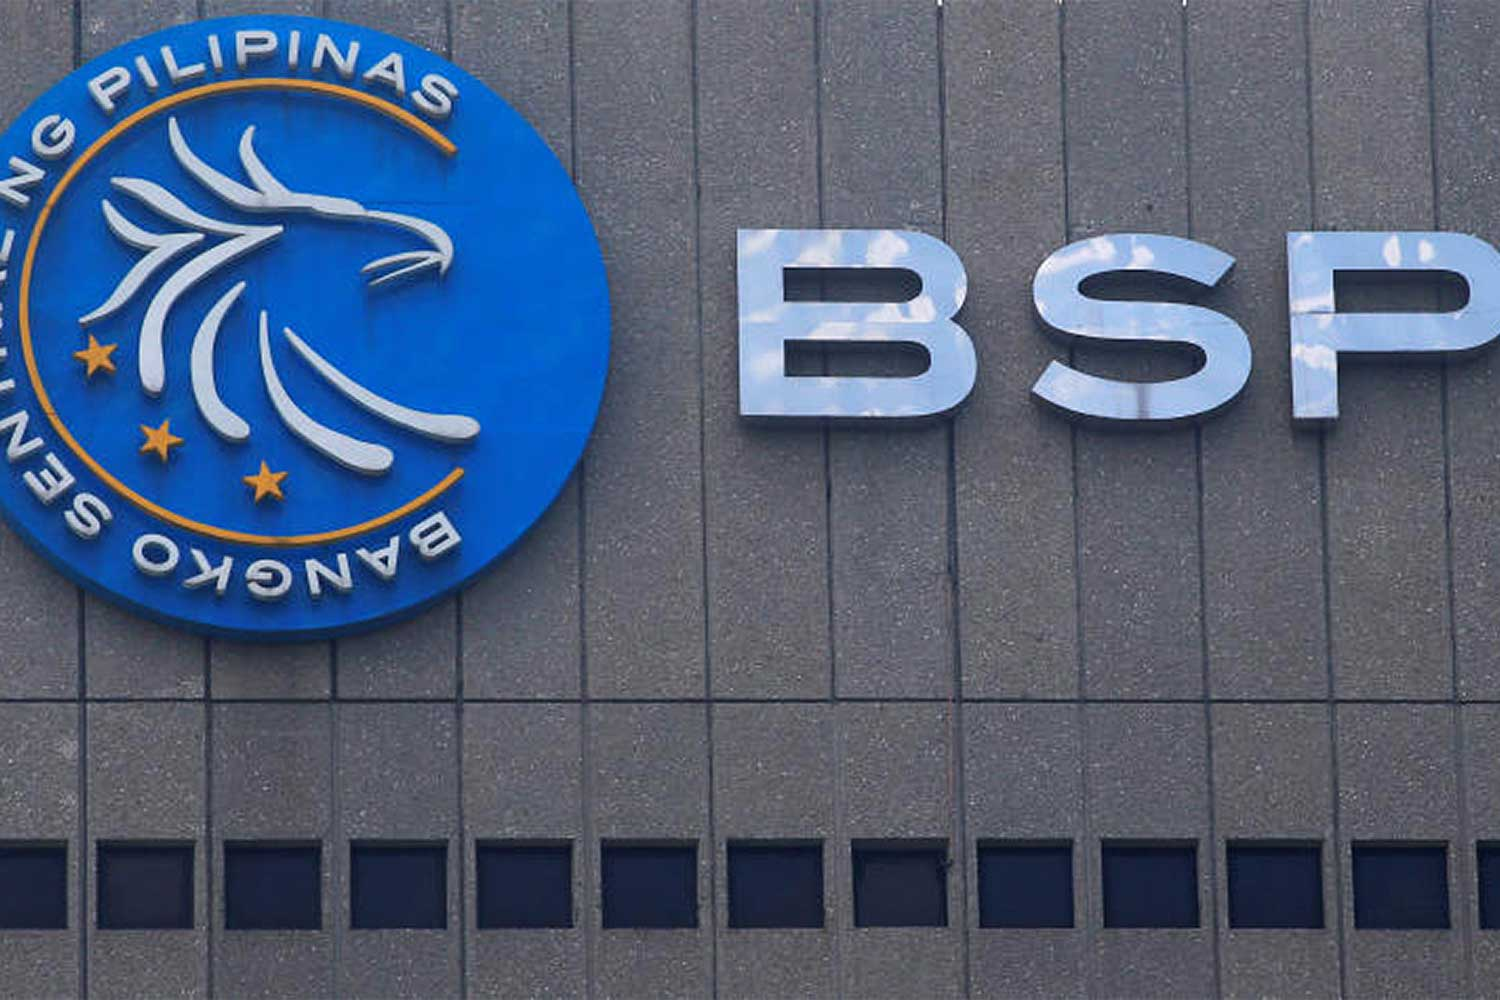 A logo of Bangko Sentral ng Pilipinas (Central Bank of the Philippines) is seen at their main building in Manila, Philippines March 23, 2016. (Reuters file photo)